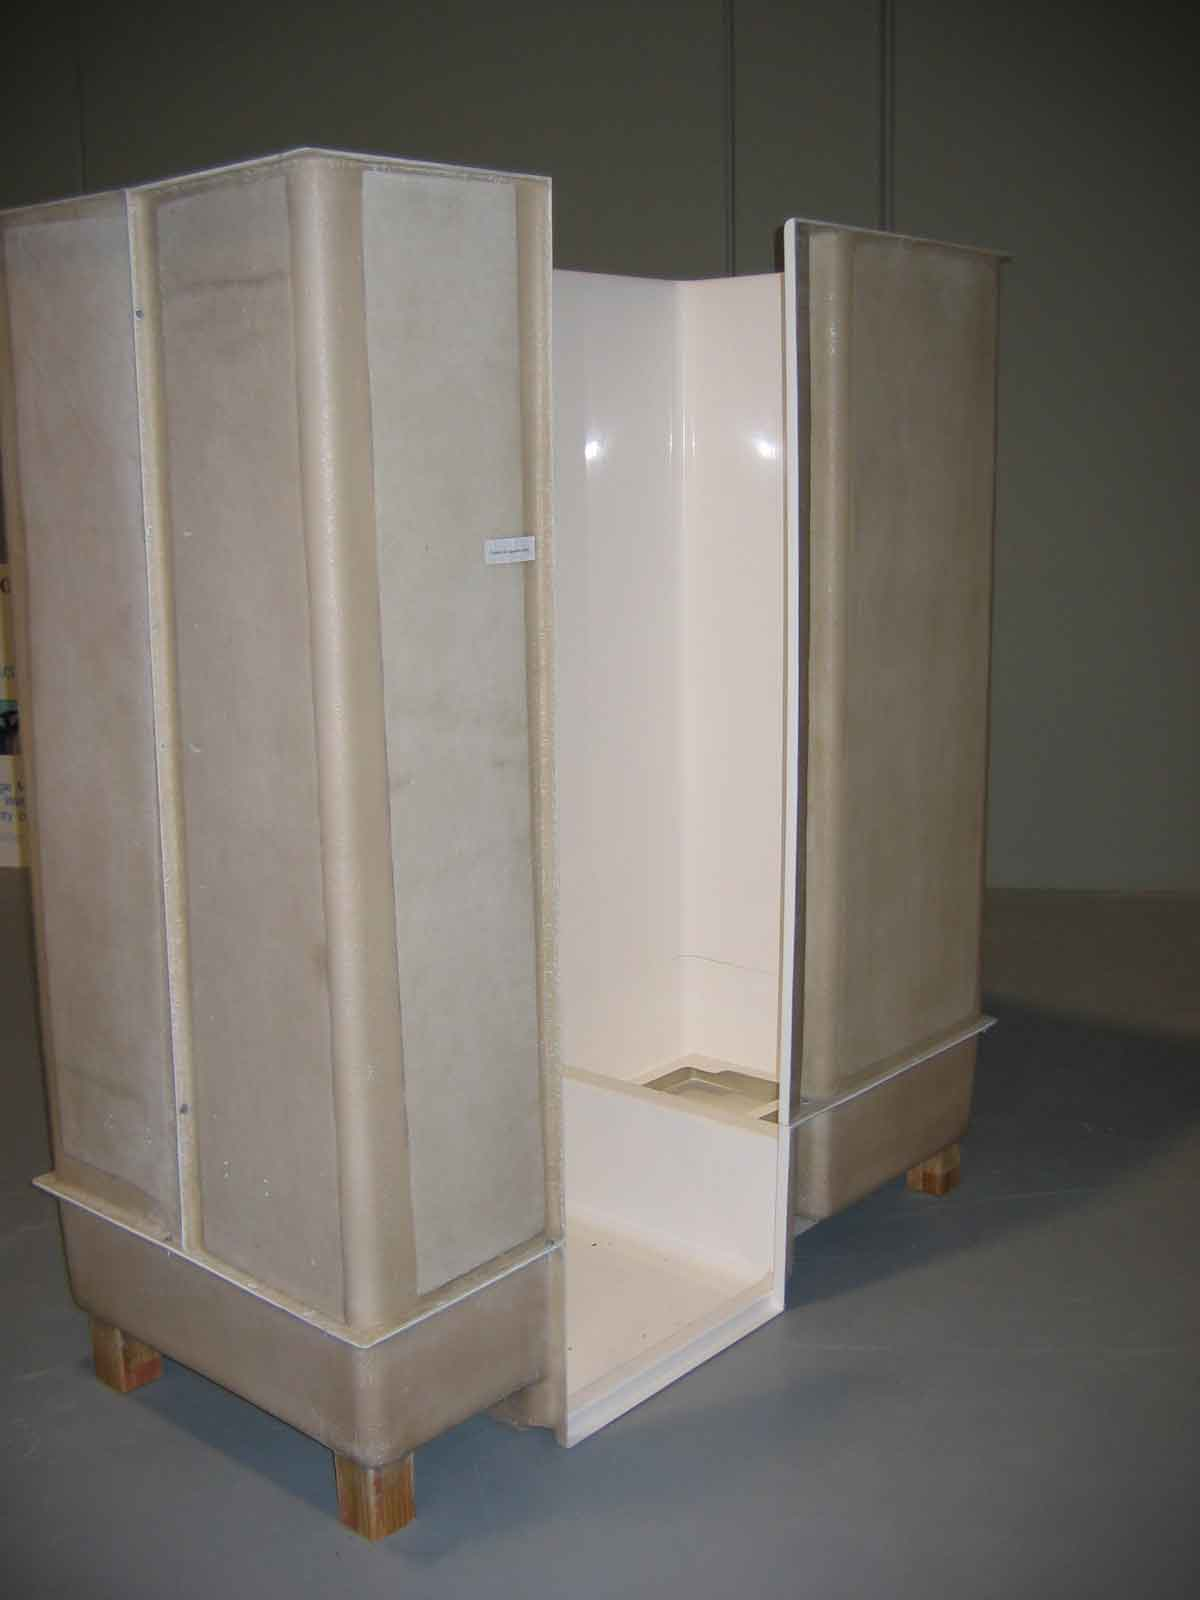 Shower Cubicles - Ensuites To Suit